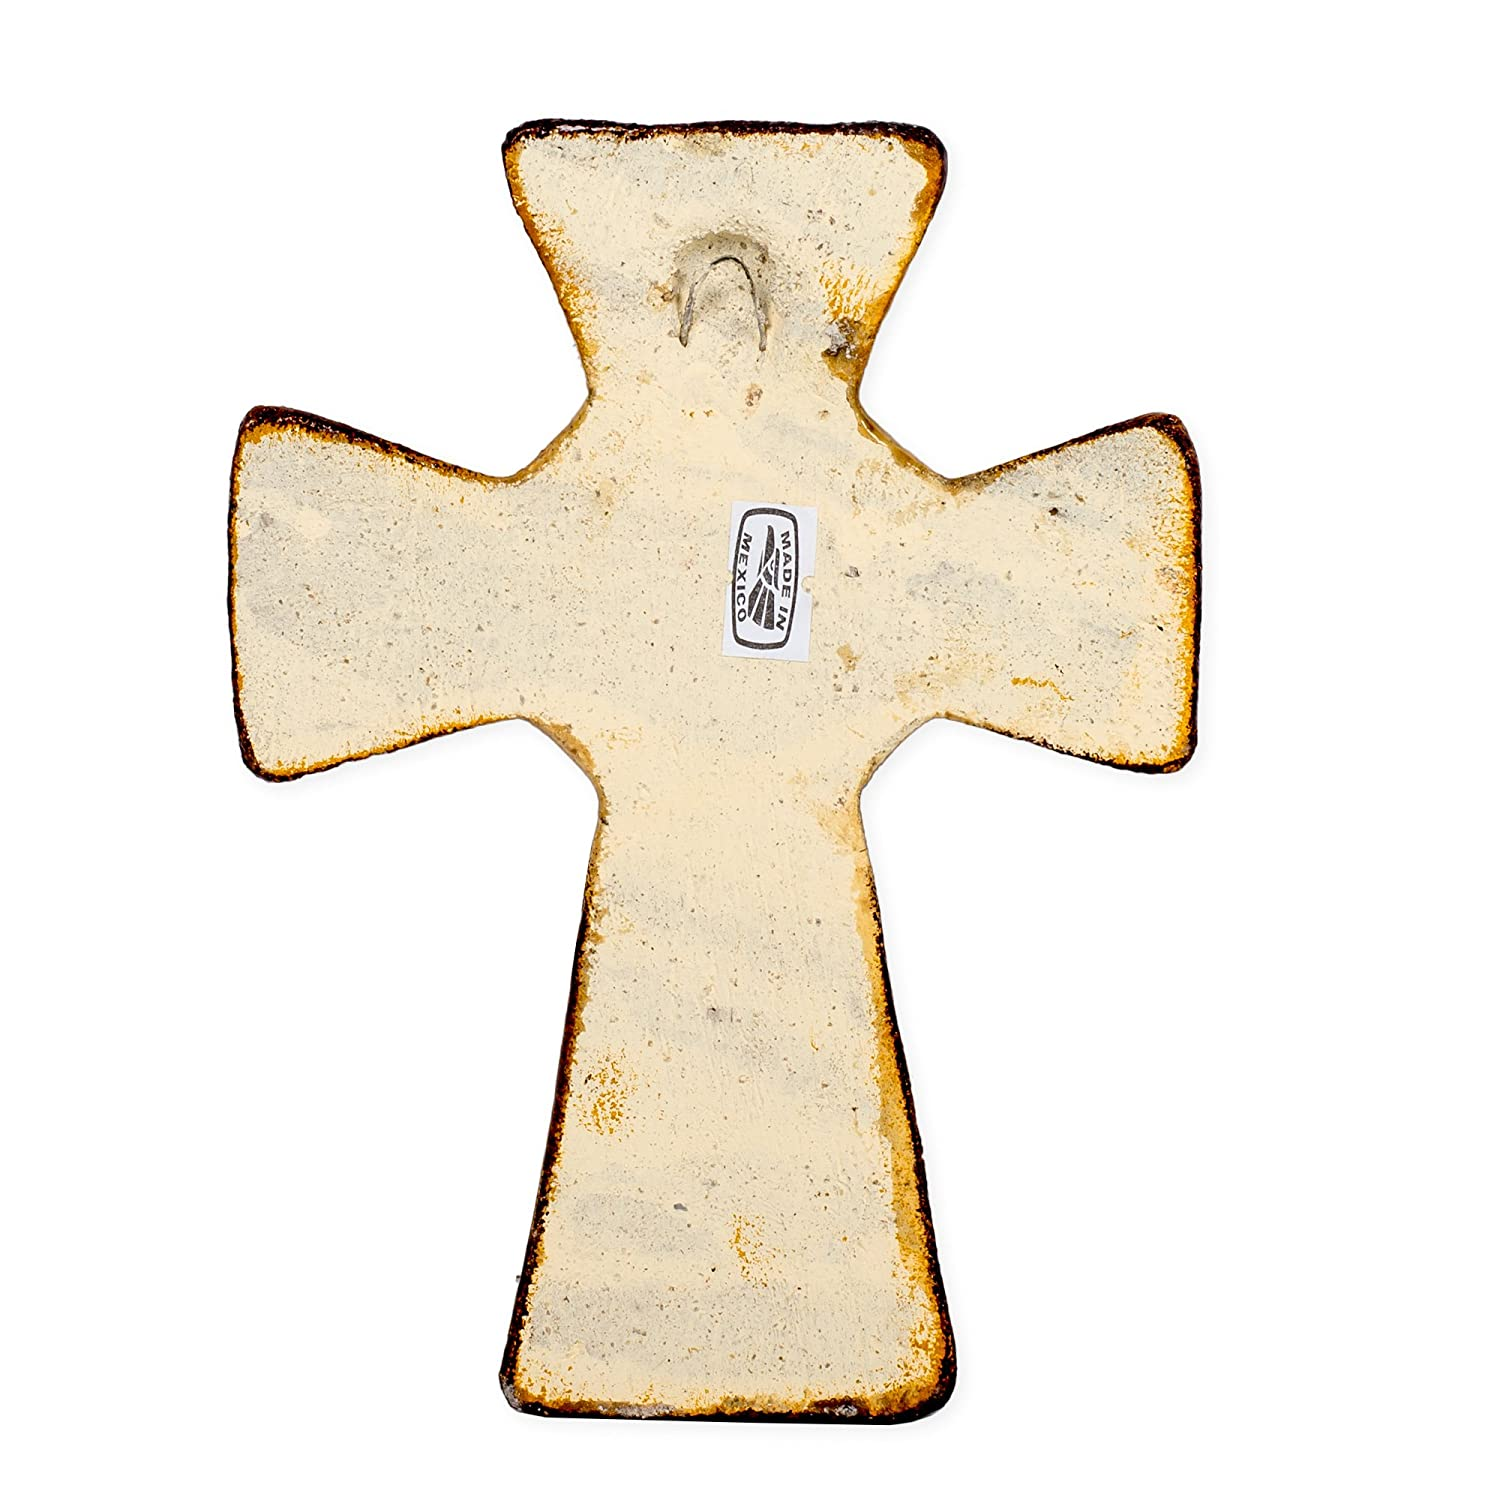 Jesus Christ Image 7 x 5 Inch Handcrafted Clay Cross